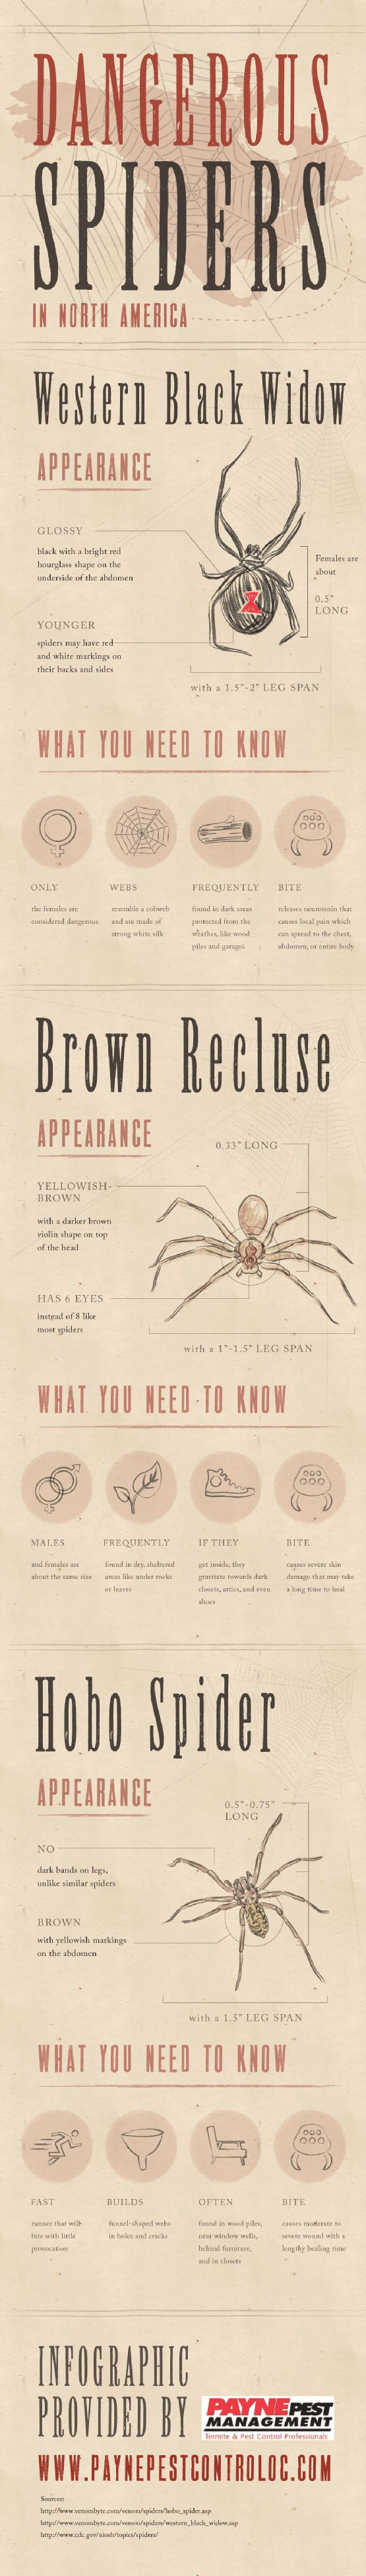 The hobo spider is a fast runner that will bite with little provocation. The bite causes moderate to severe wounds with a lengthy healing time. Learn more about dangerous spiders by checking out this infographic from a pest control company located in Orange County.